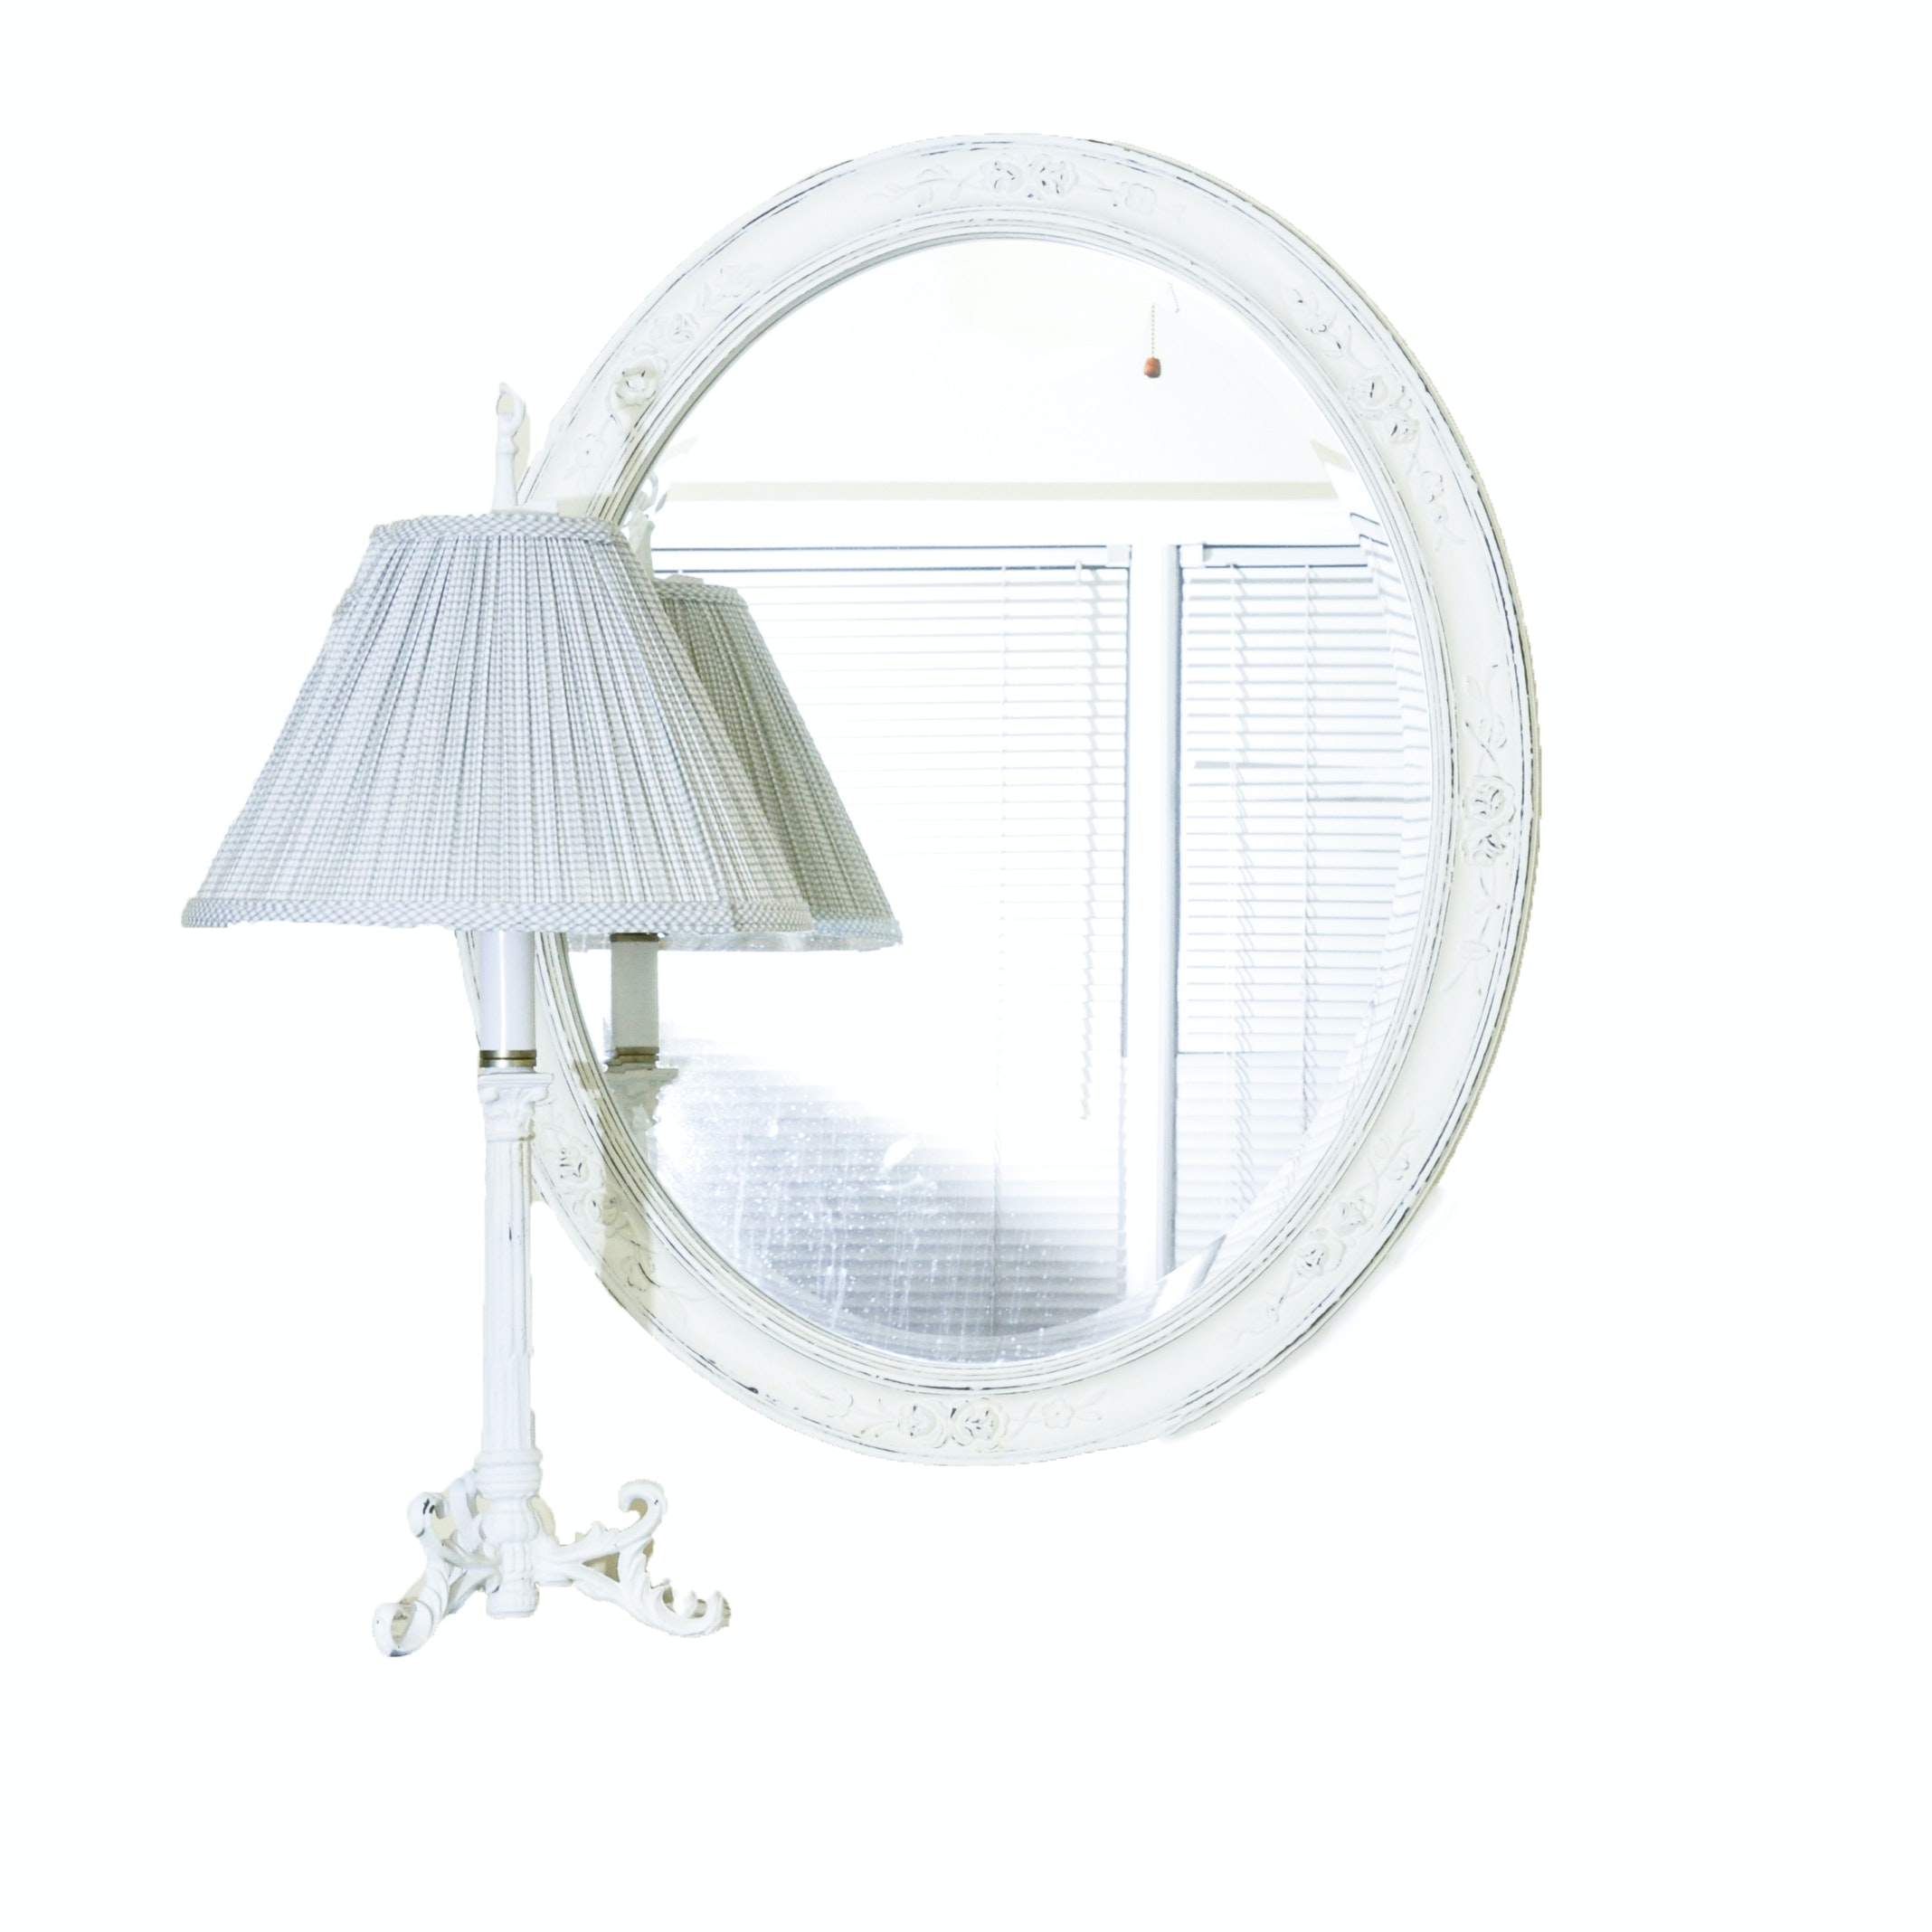 French Provincial Style Mirror and Table Lamp